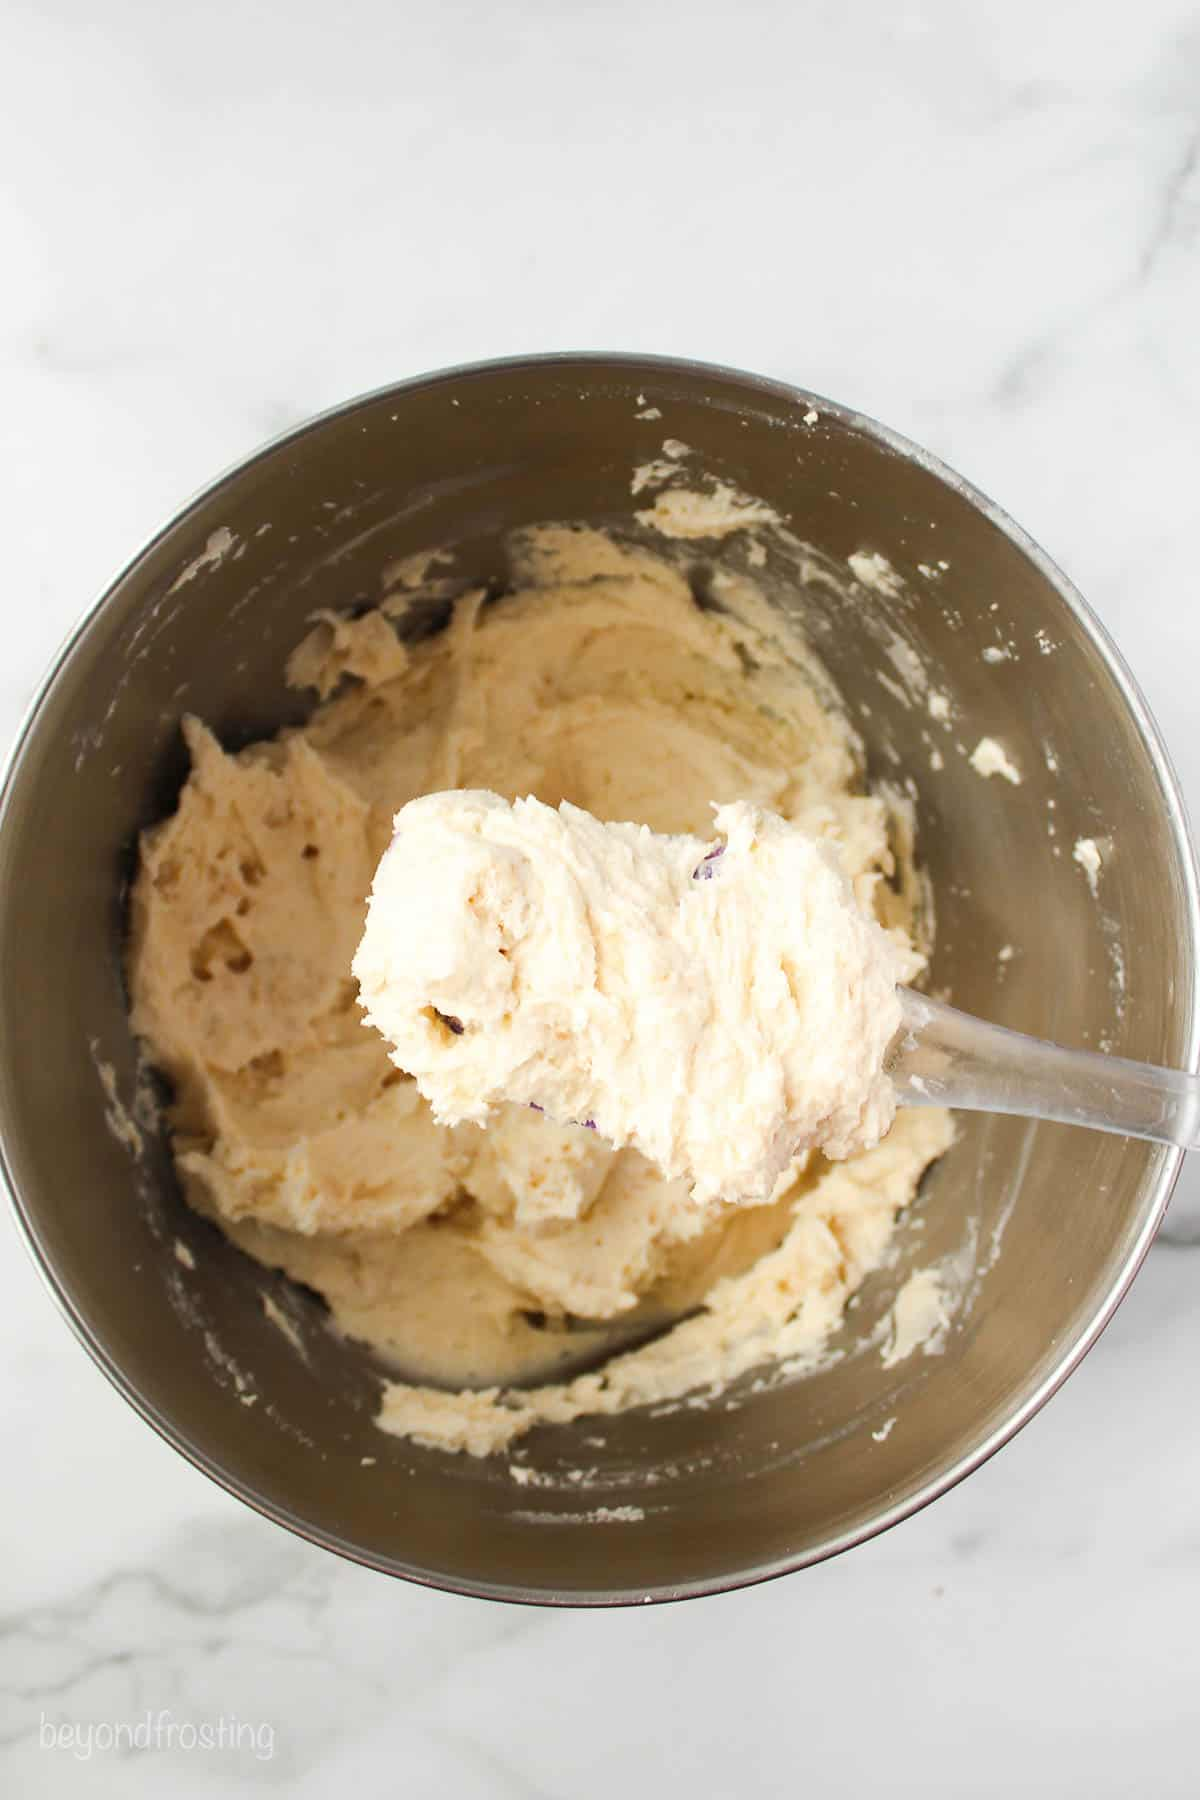 a spatula with frosting being held over a metal mixing bowl